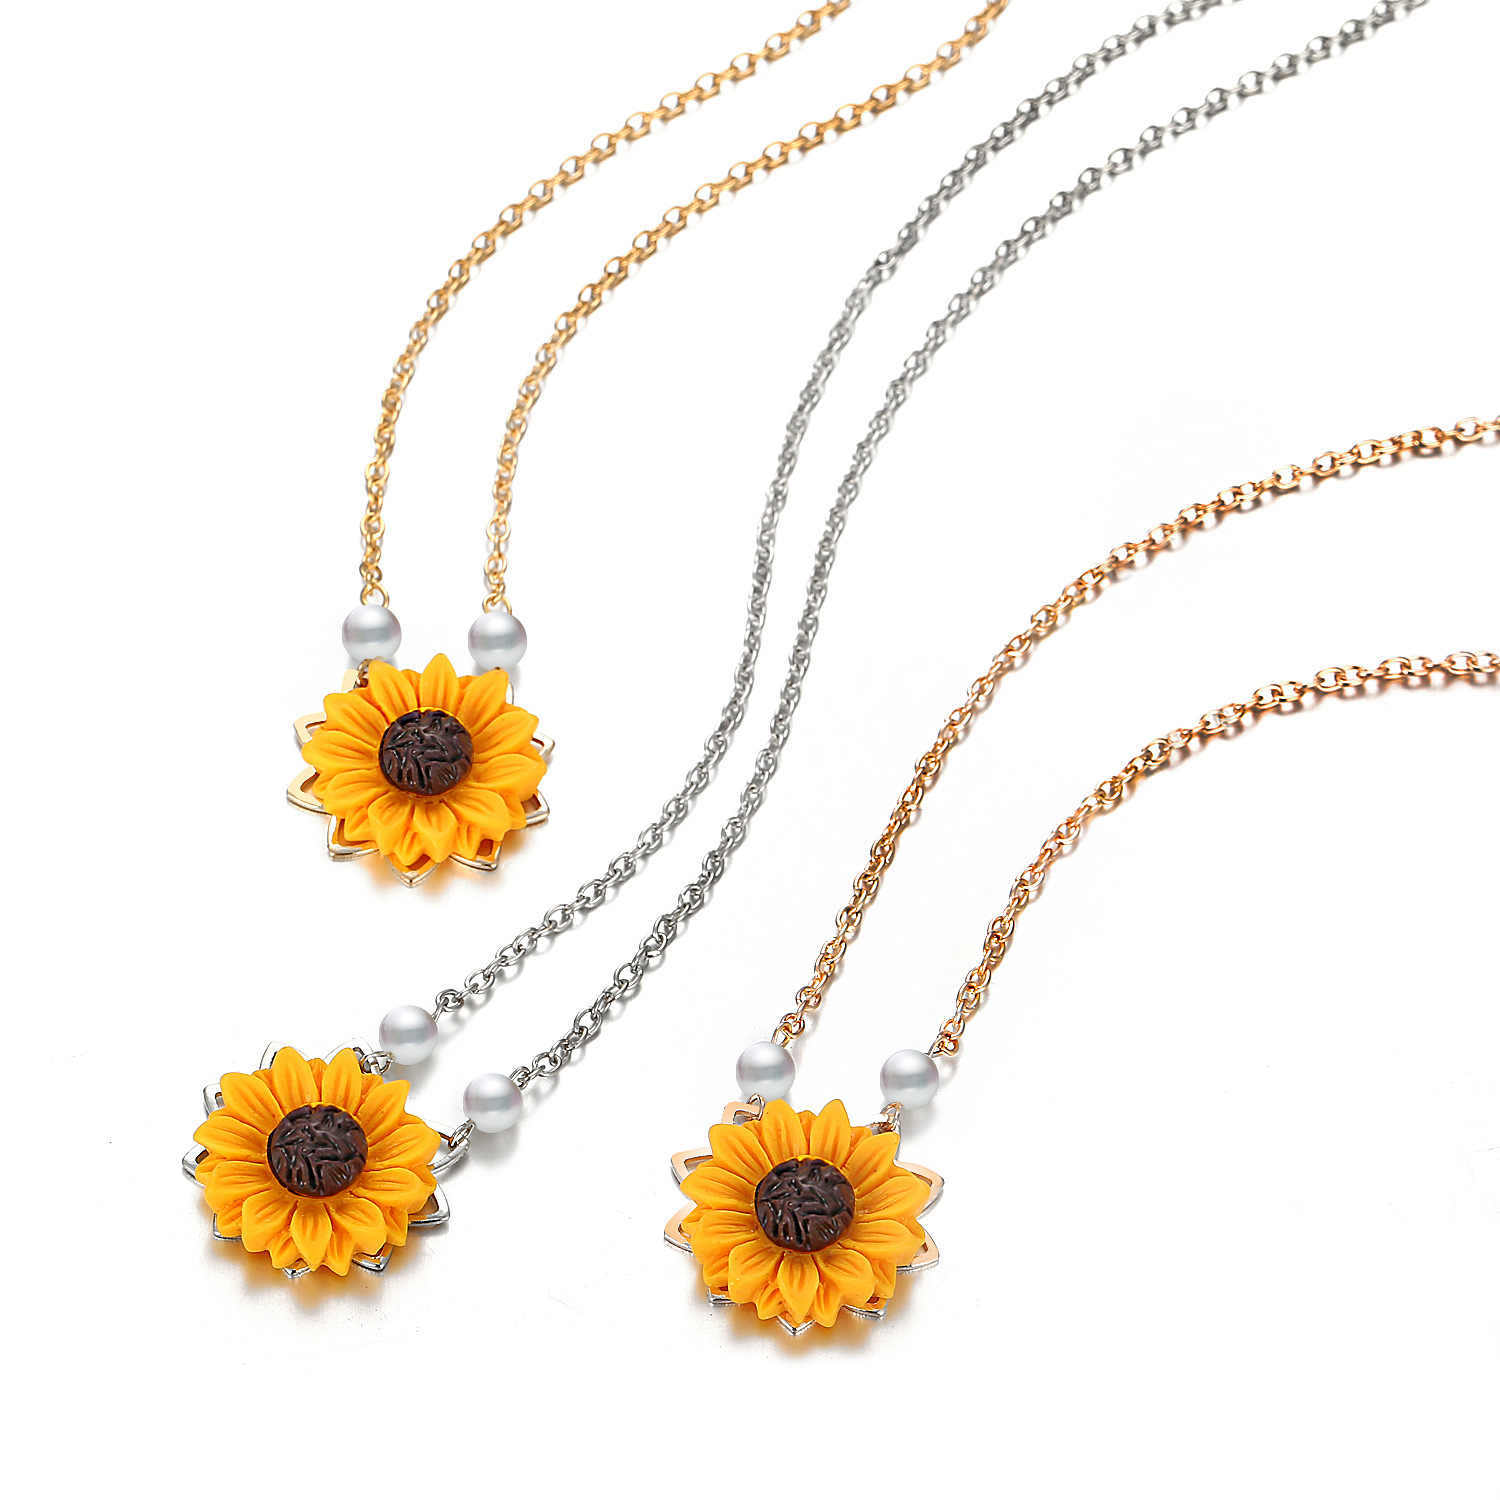 fe0ba99531 ... European American New Style Jewelry Creative Fashion Cool Sunflower  Necklace Wish Hot Pearl Sweater Chain xuben ...